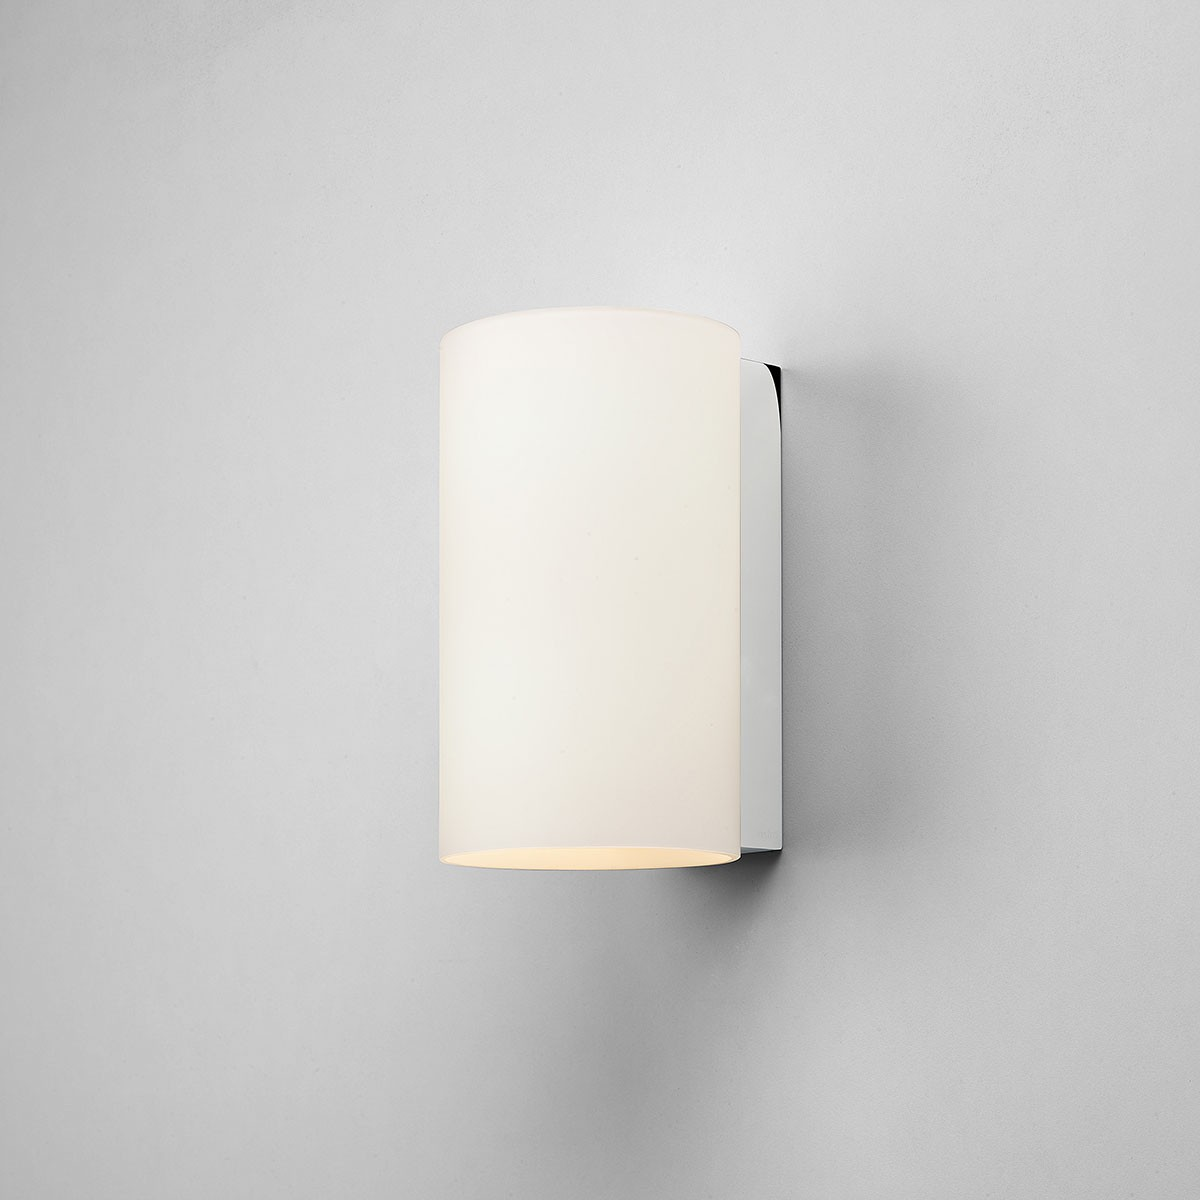 Luxury Glass Wall Lights : Astro Cyl 200 White Glass Wall Light at UK Electrical Supplies.